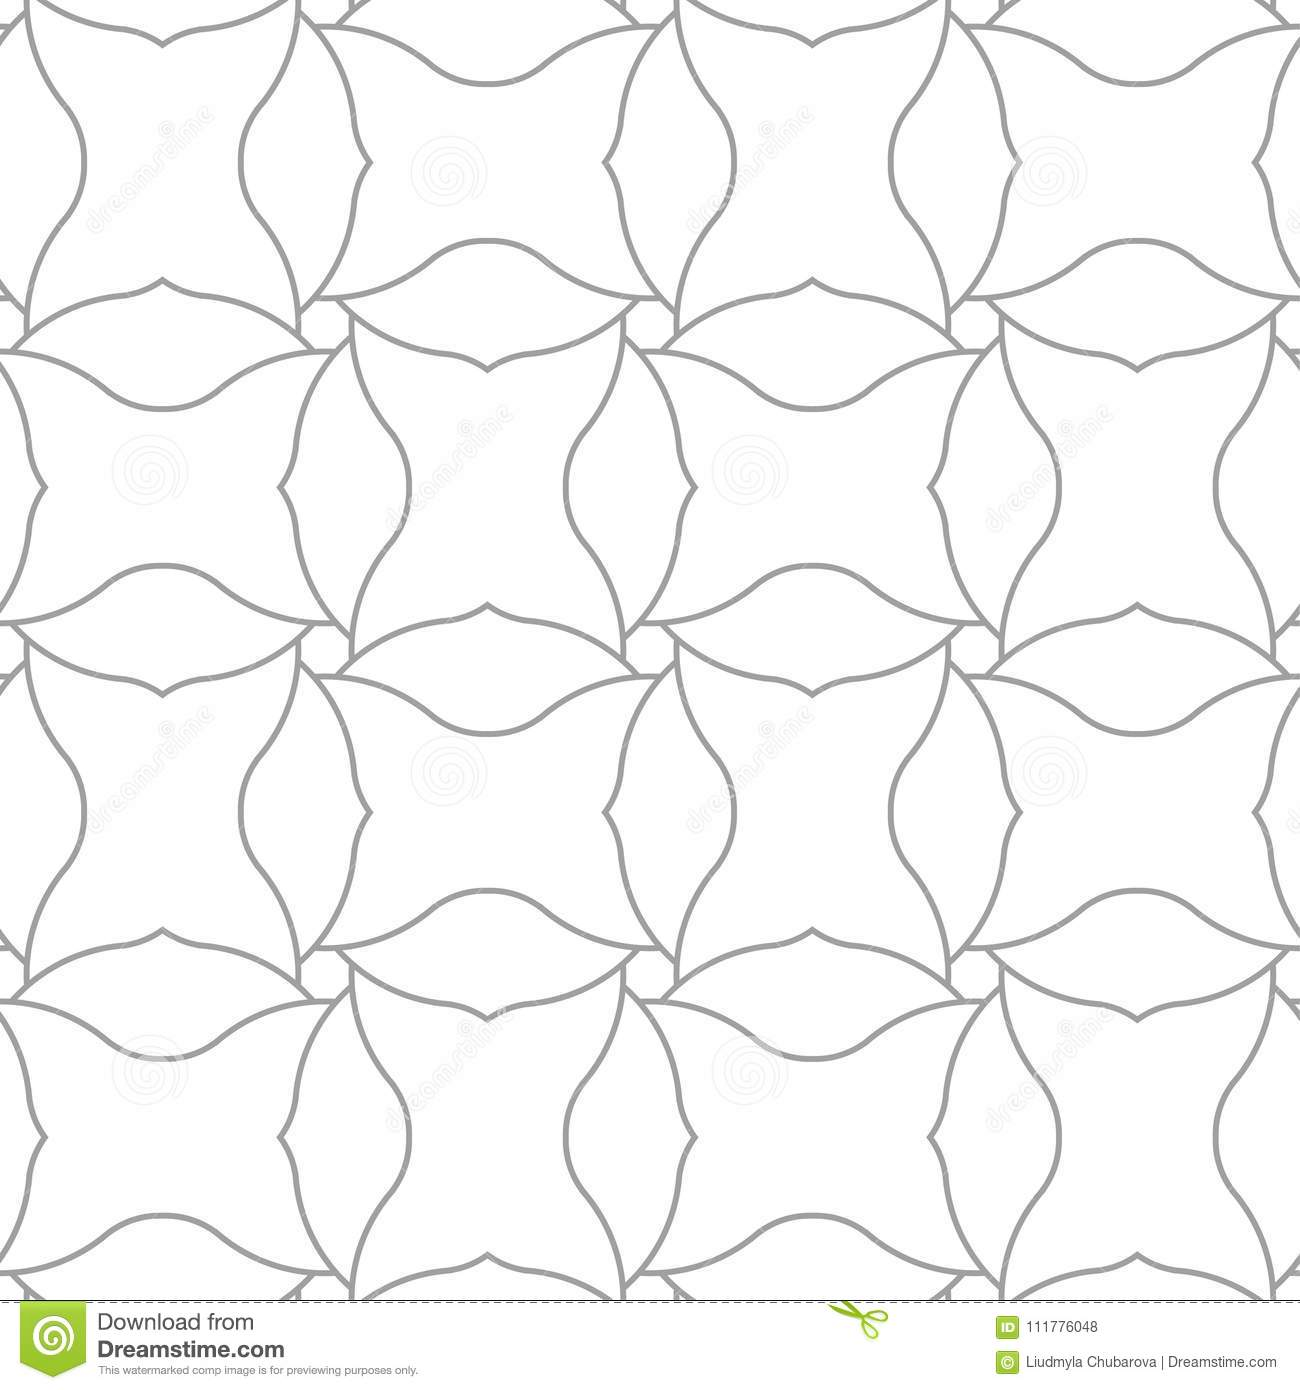 Light gray geometric print. Seamless pattern